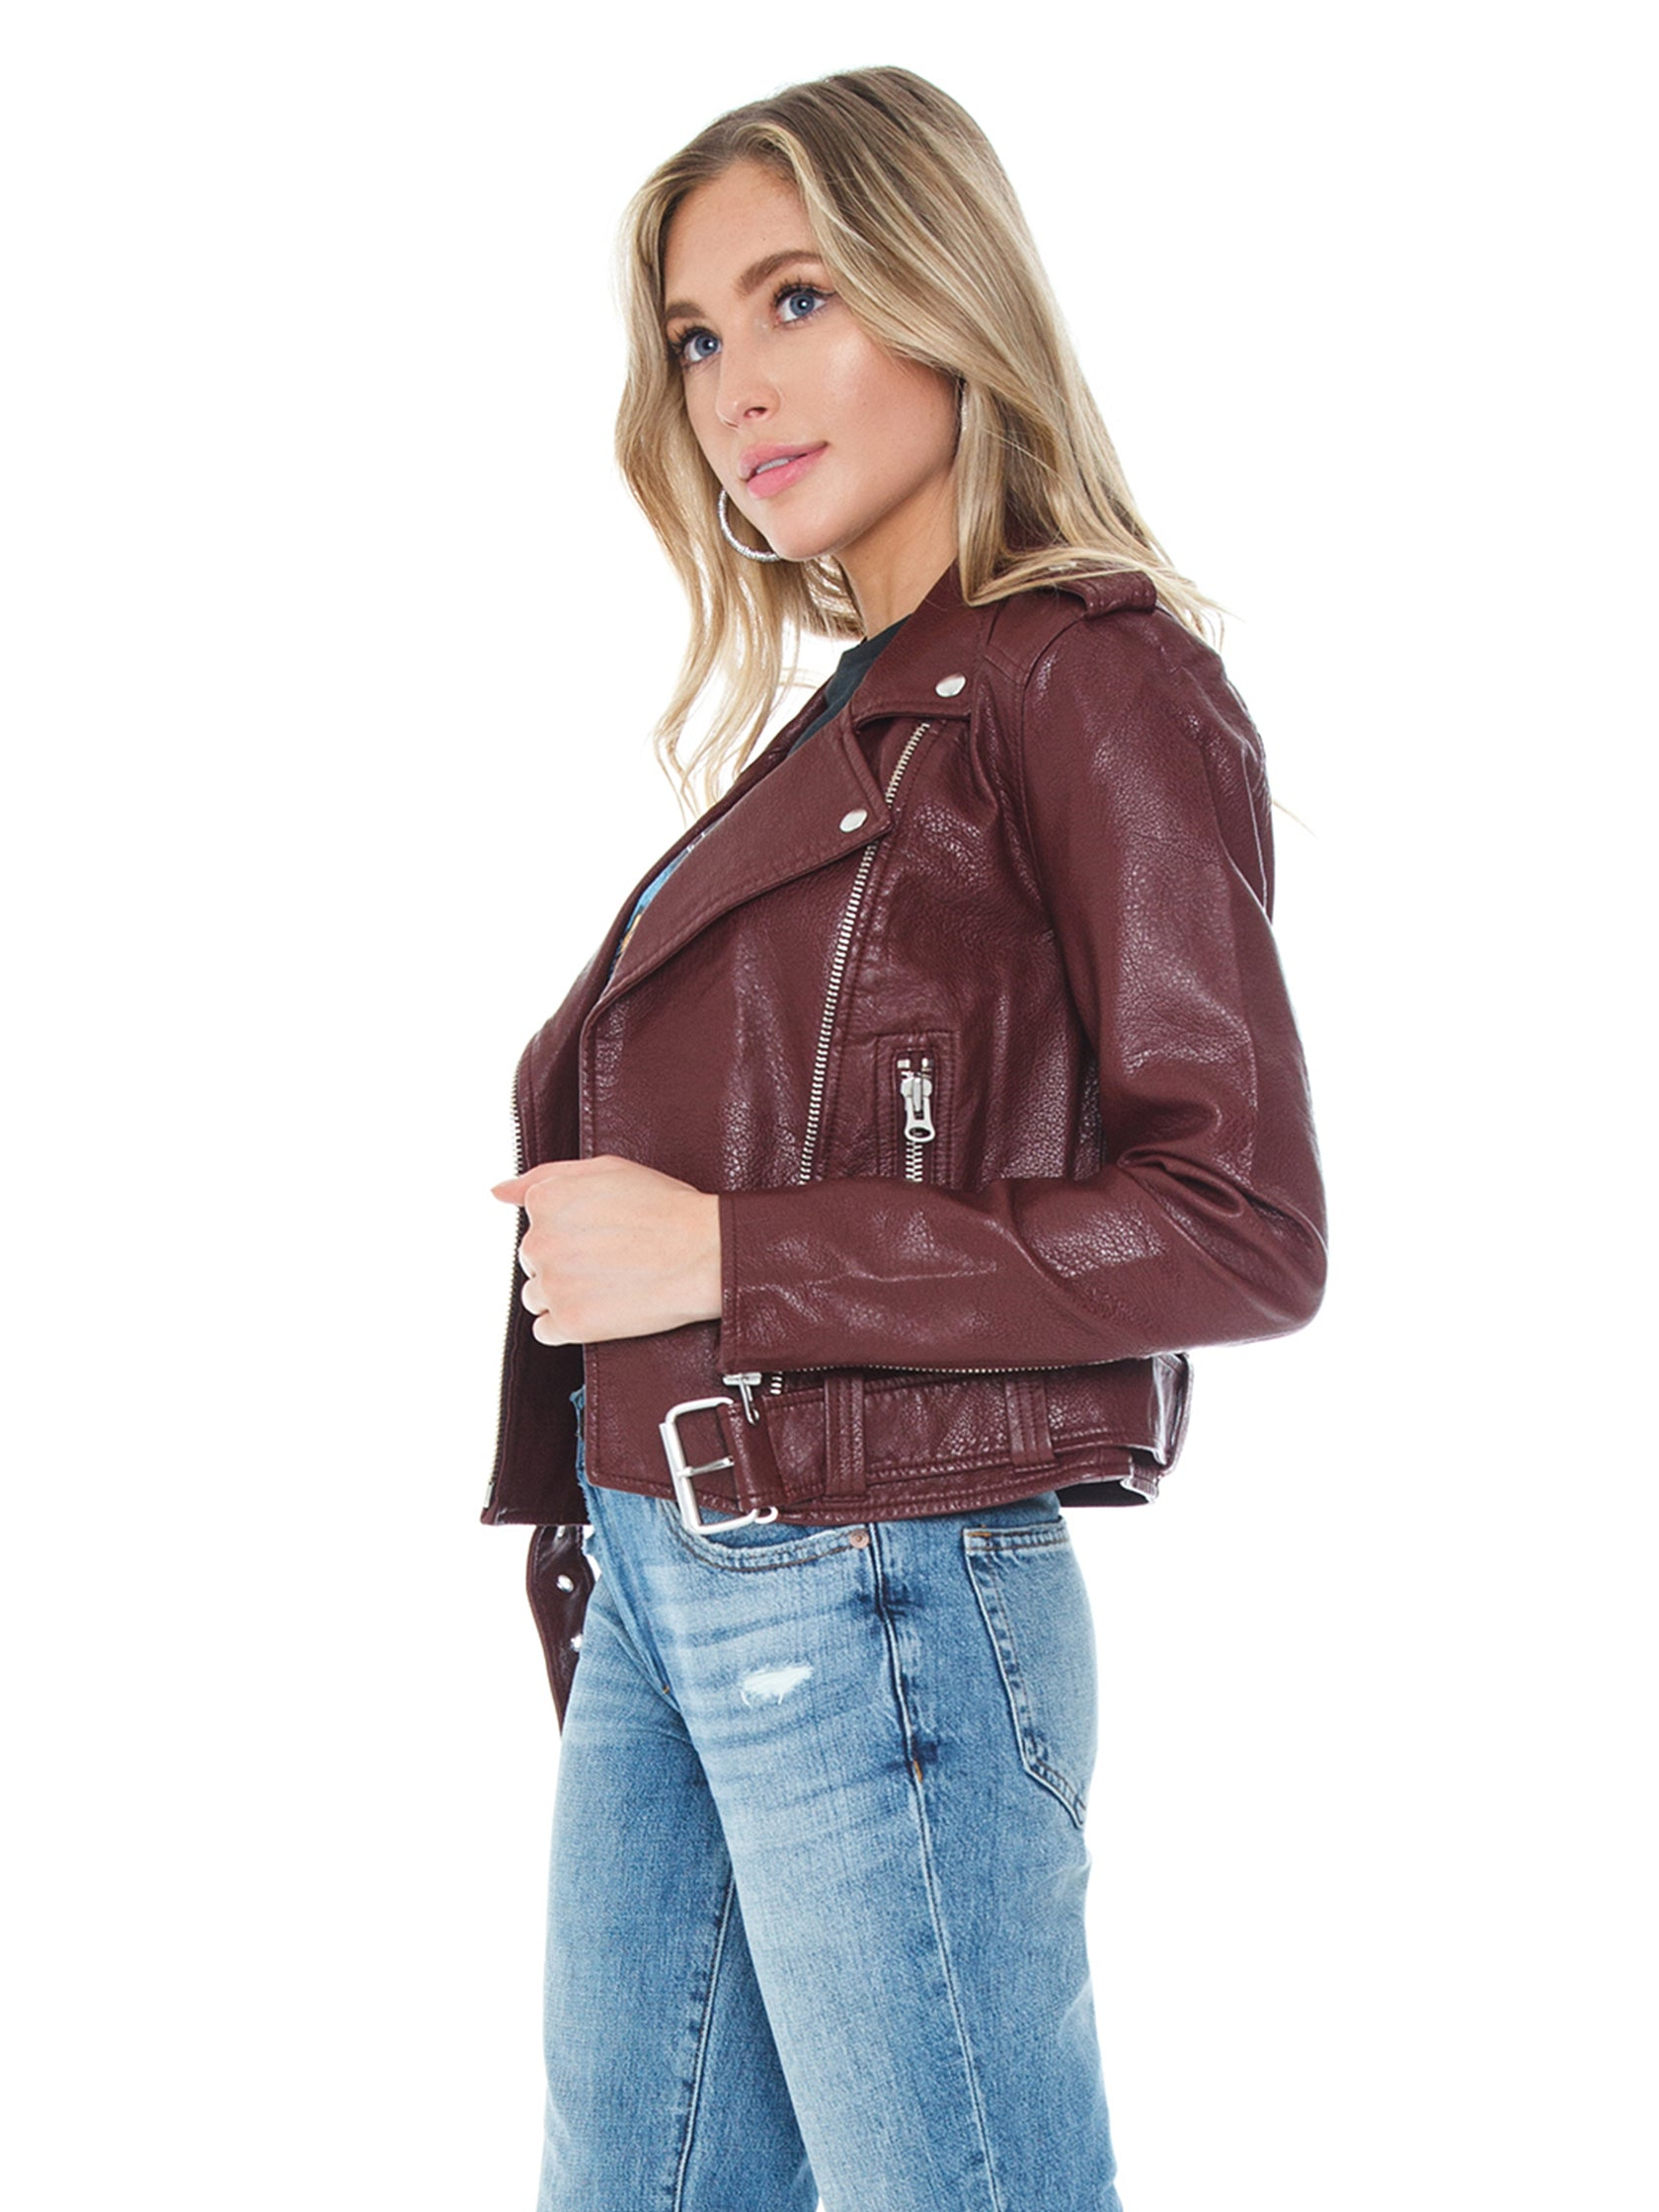 Women wearing a jacket rental from PISTOLA called Tracy Cropped Moto Jacket